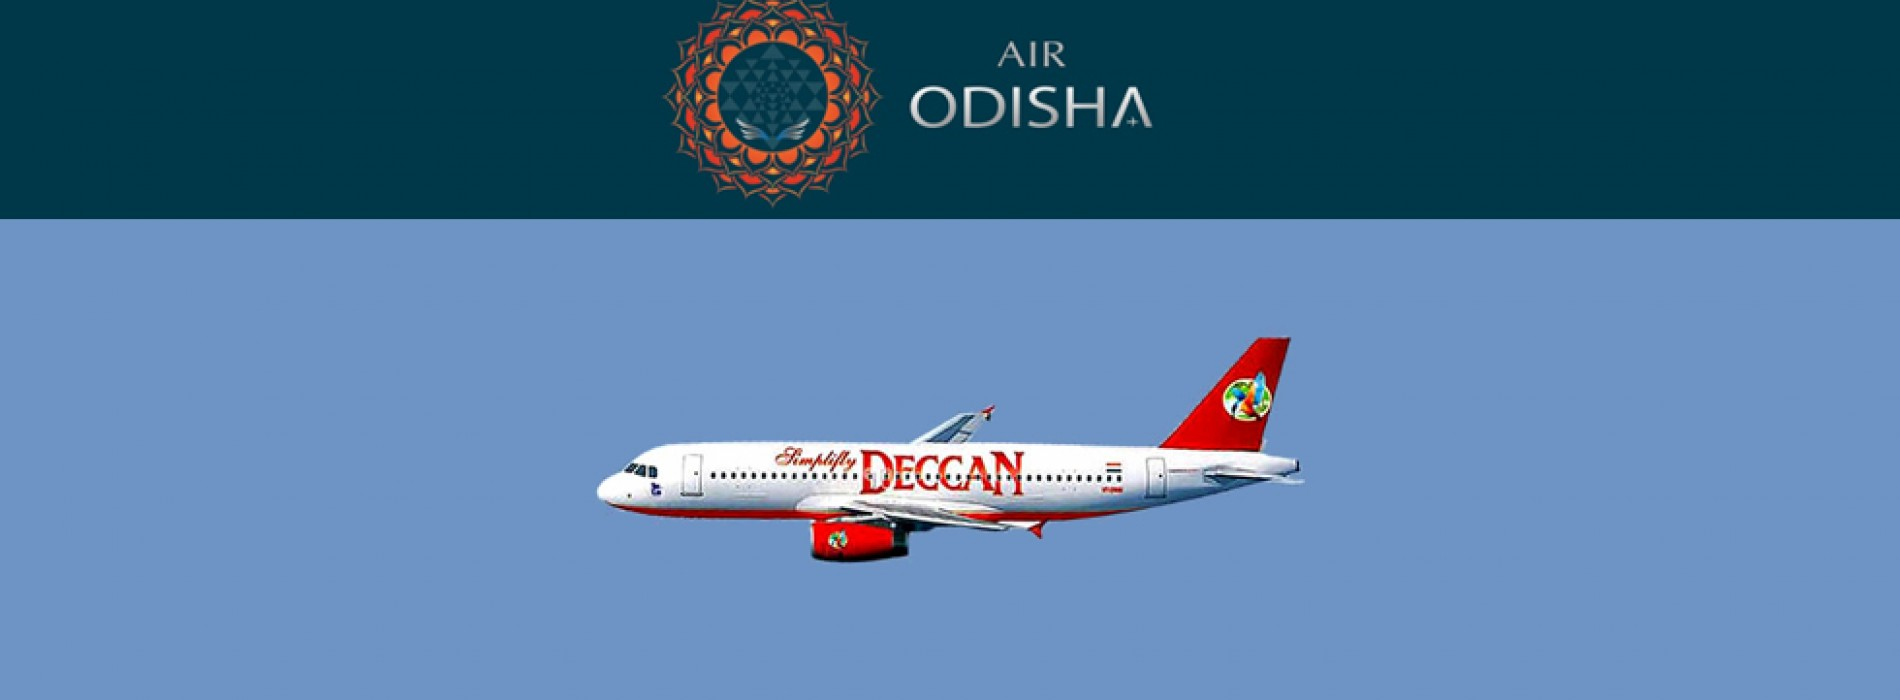 India's Air Deccan, Air Odisha ownership to be consolidated